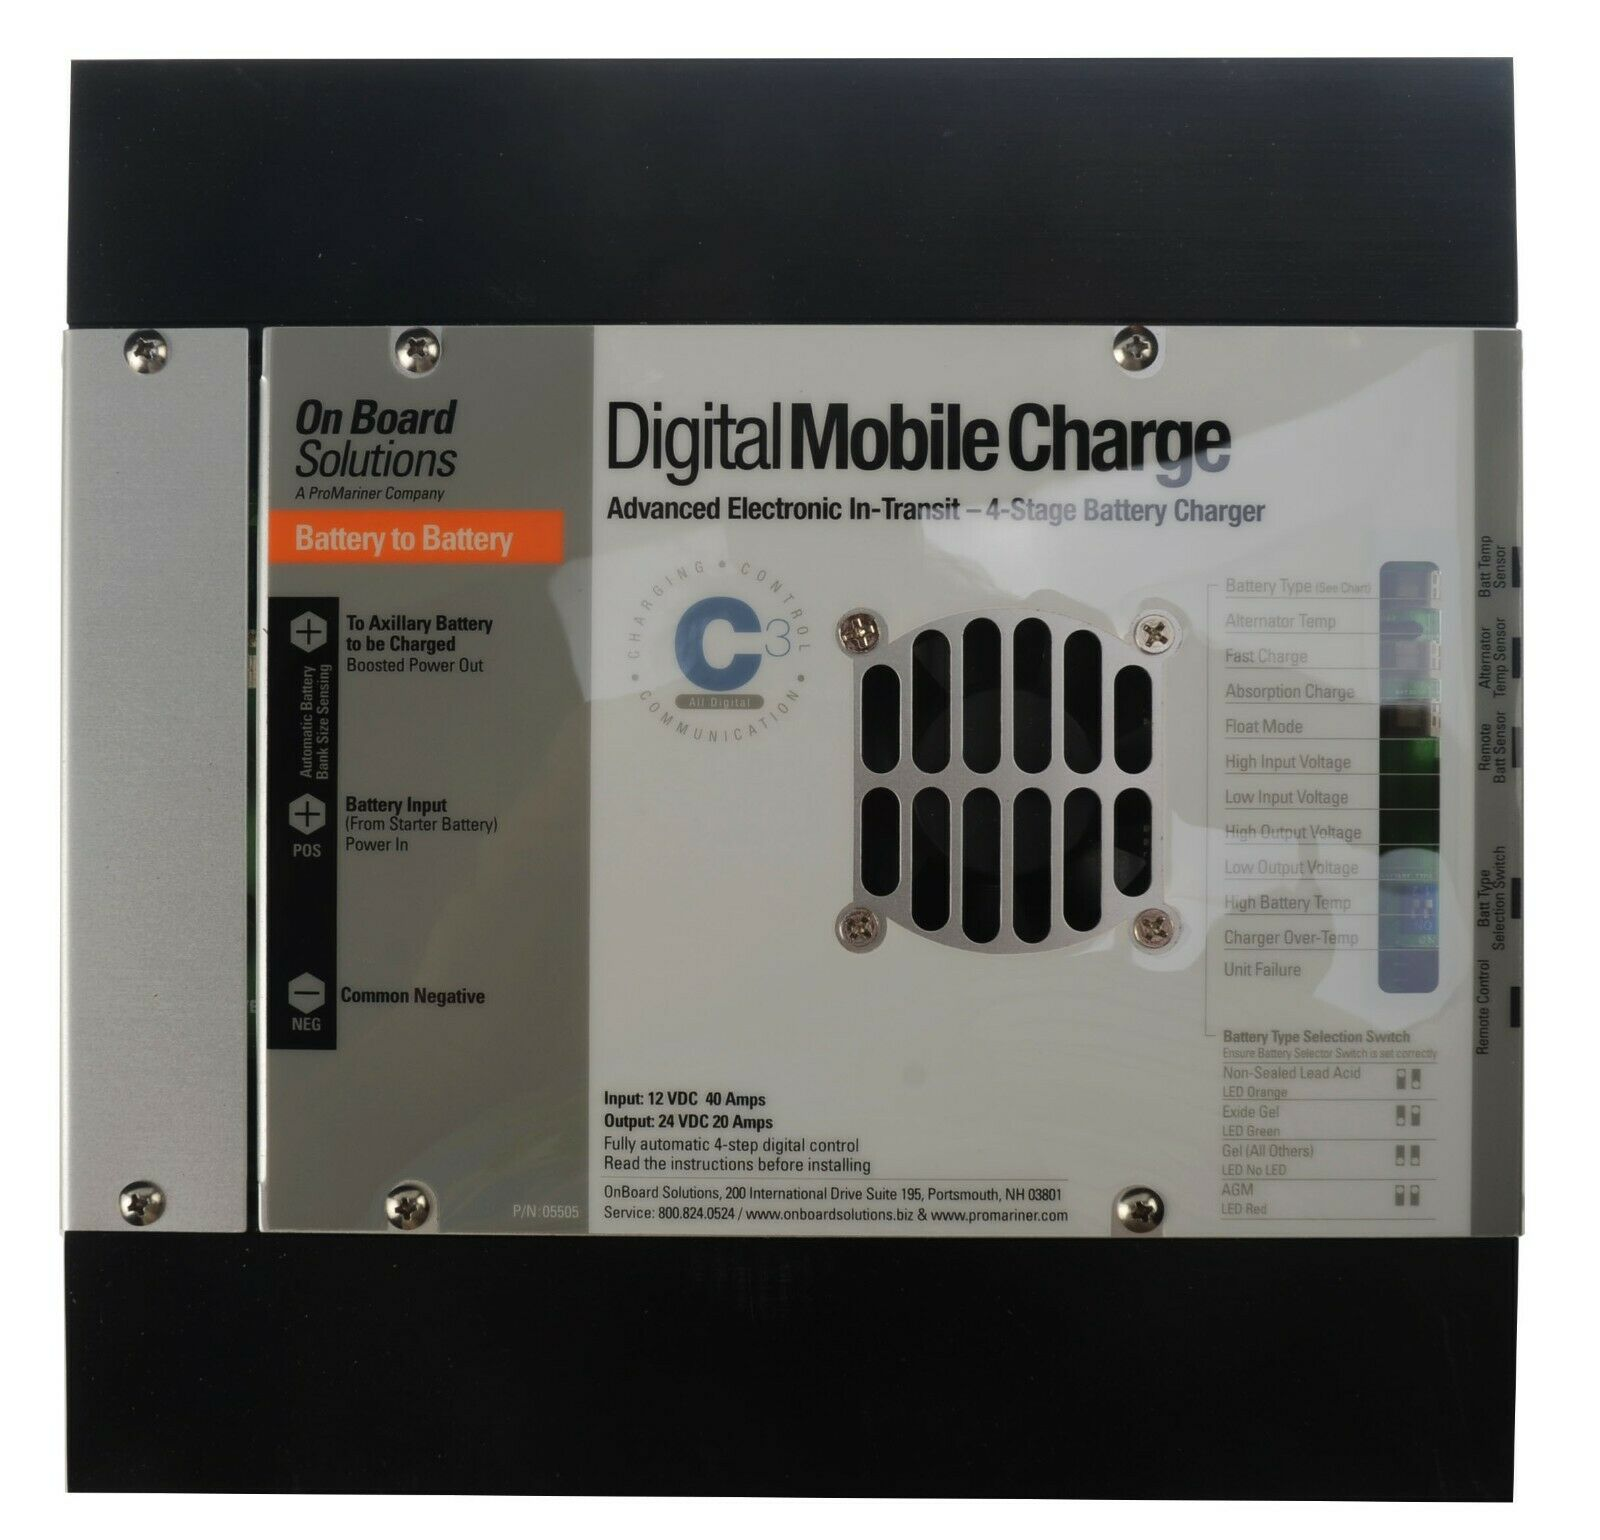 12v To 12v ProMariner Digital Mobile Charge40 Advanced Electronics In-Transit 4 Stage Battery Charger